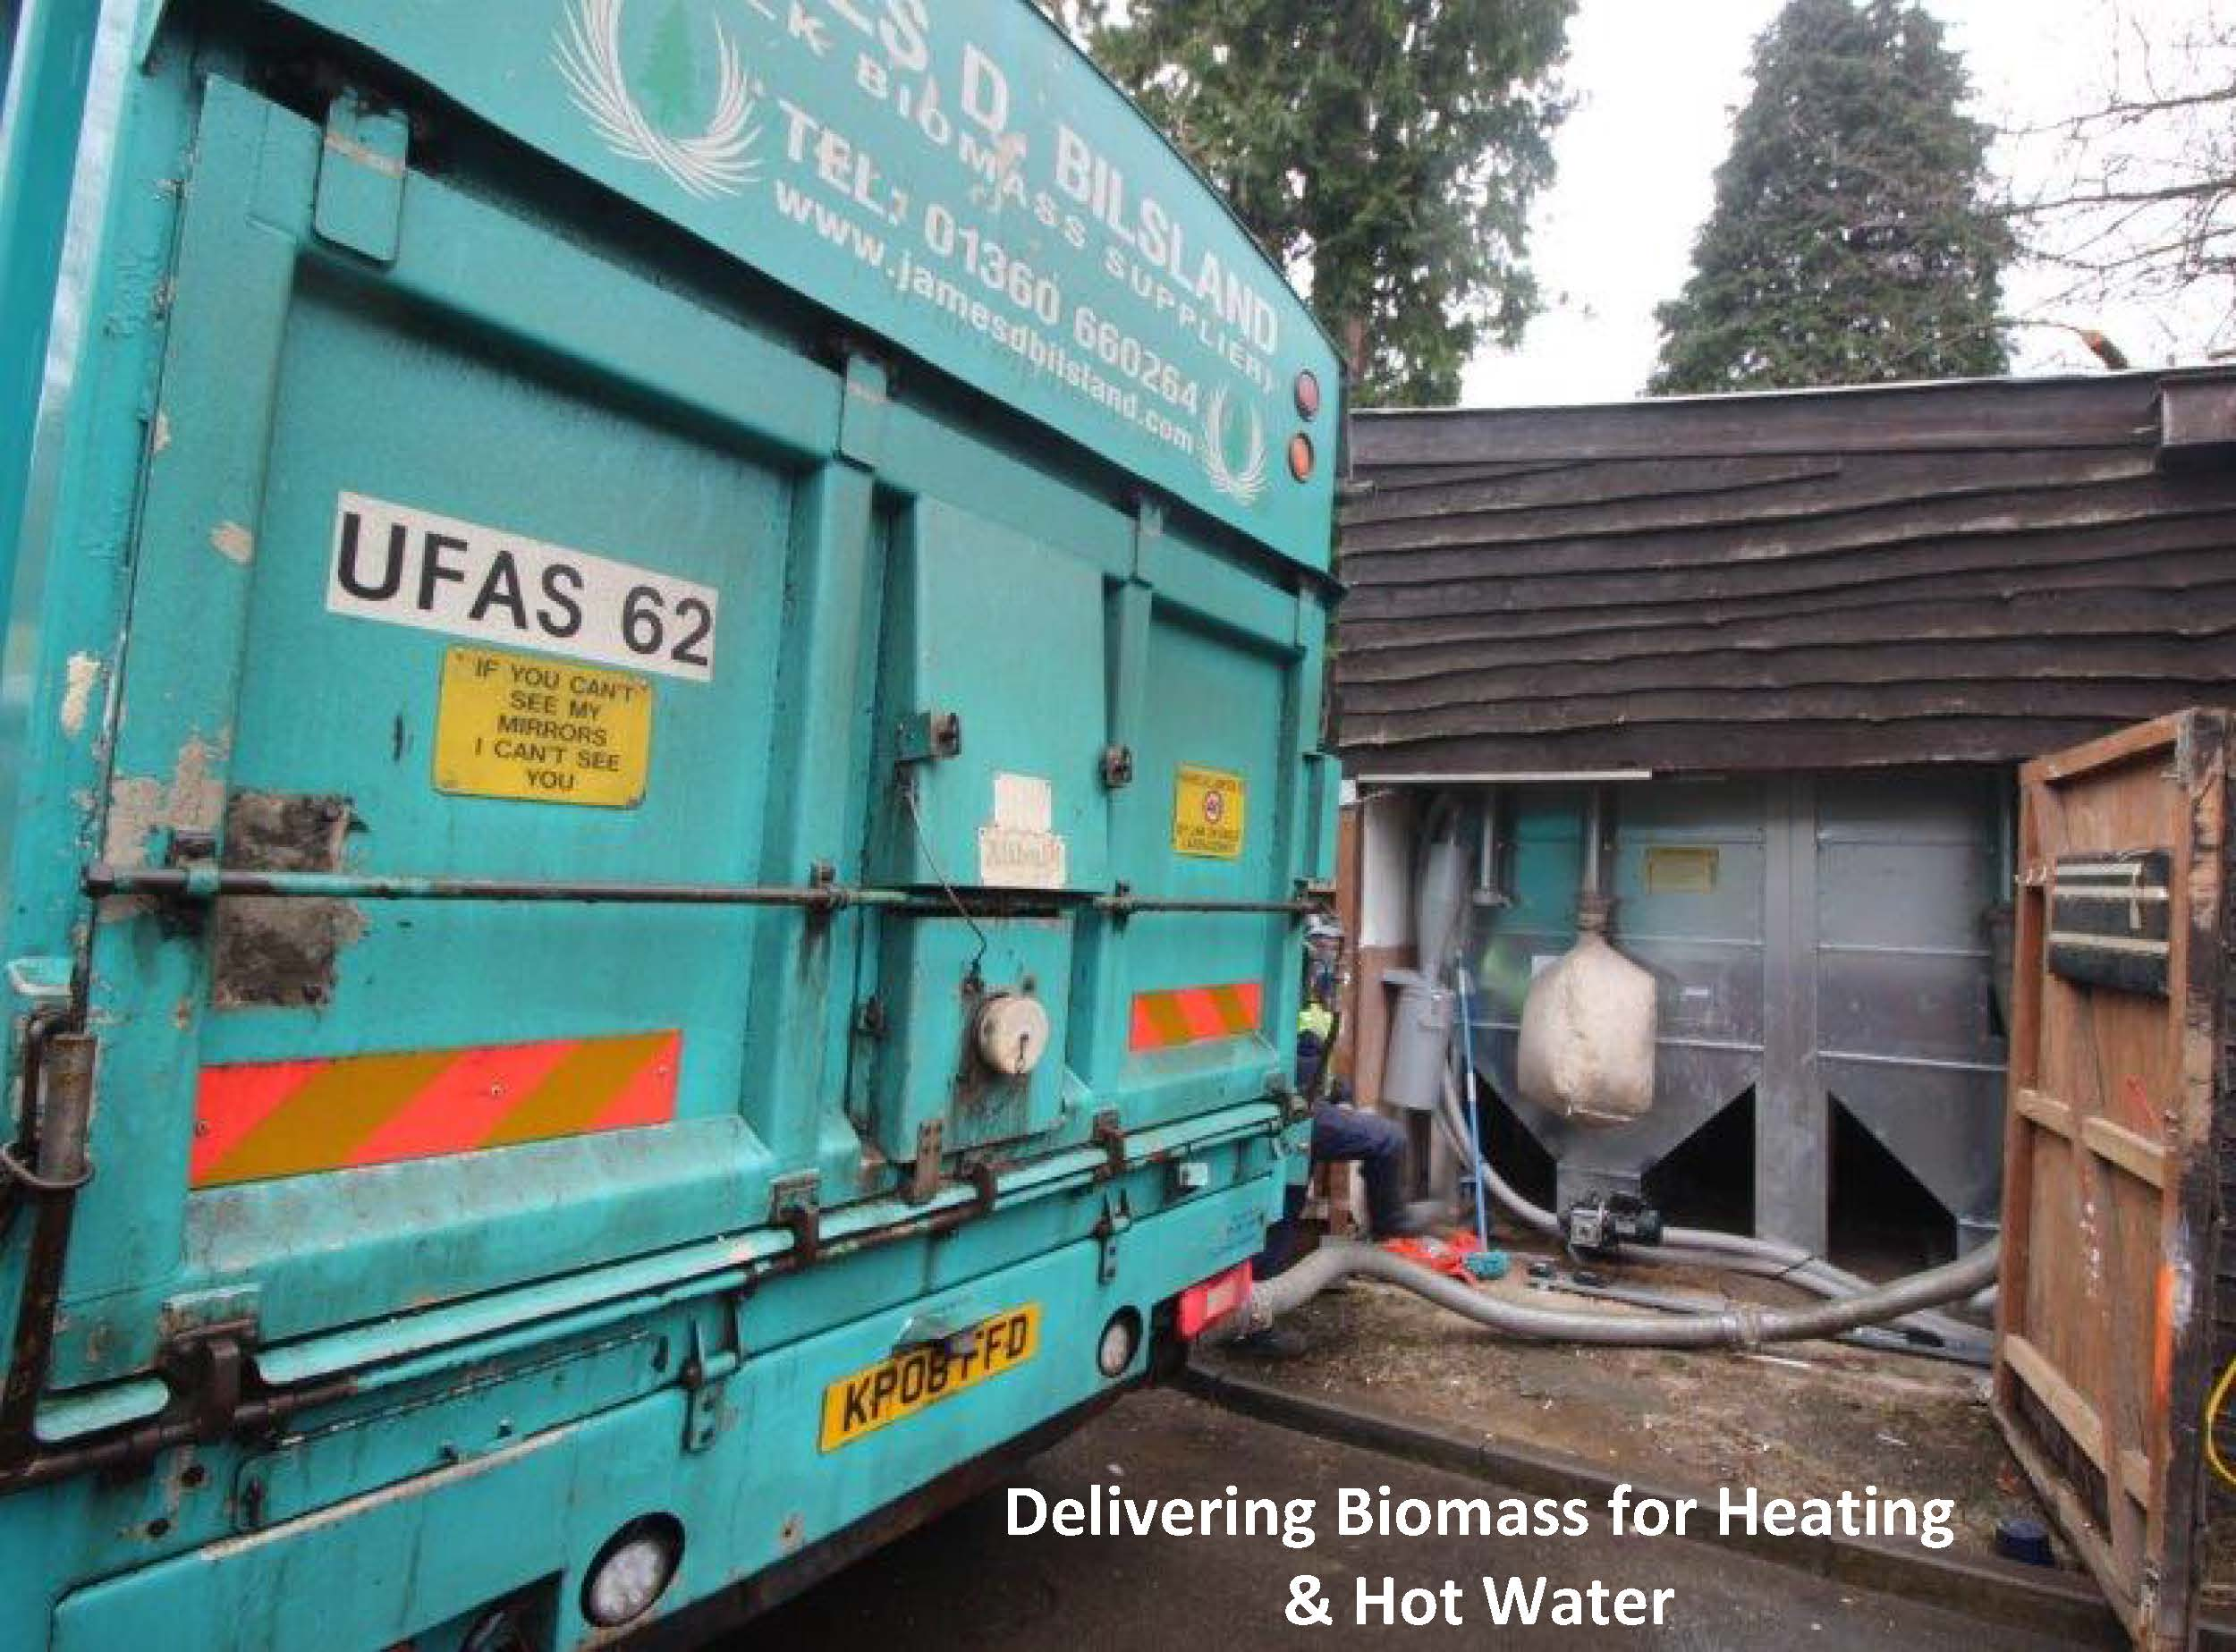 Delivering Biomass for Heating